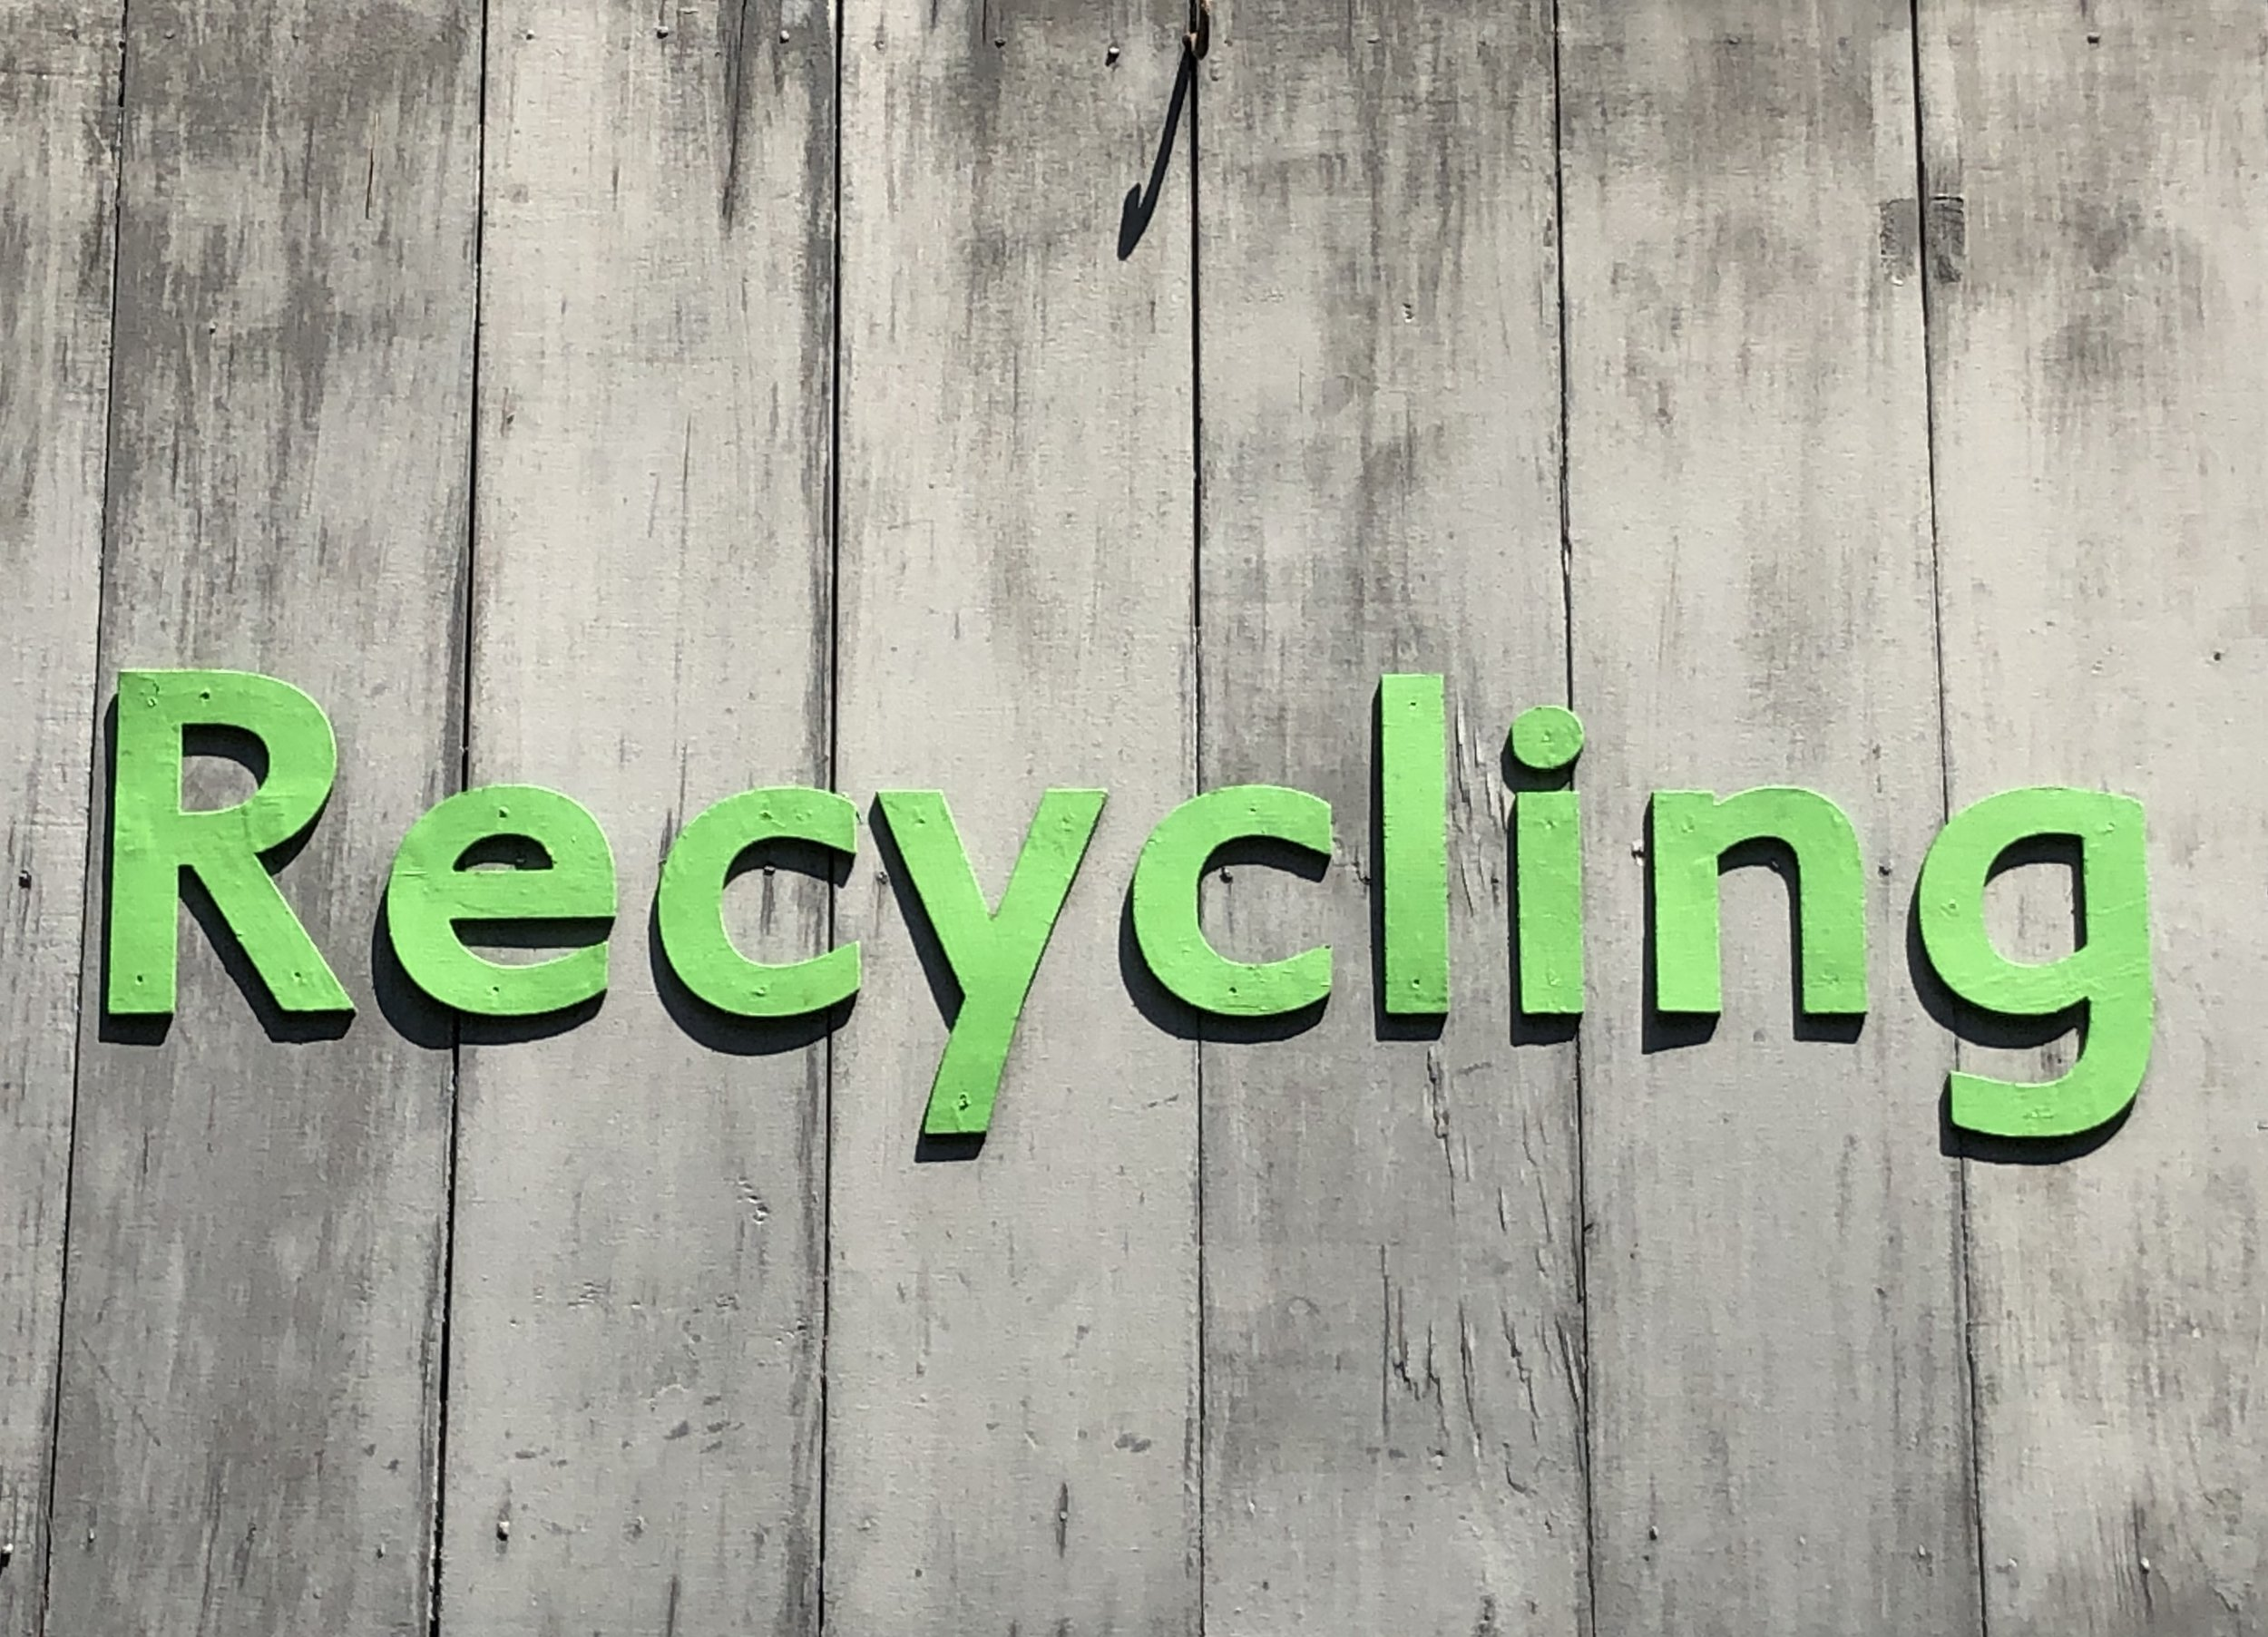 reducing and reusing, too